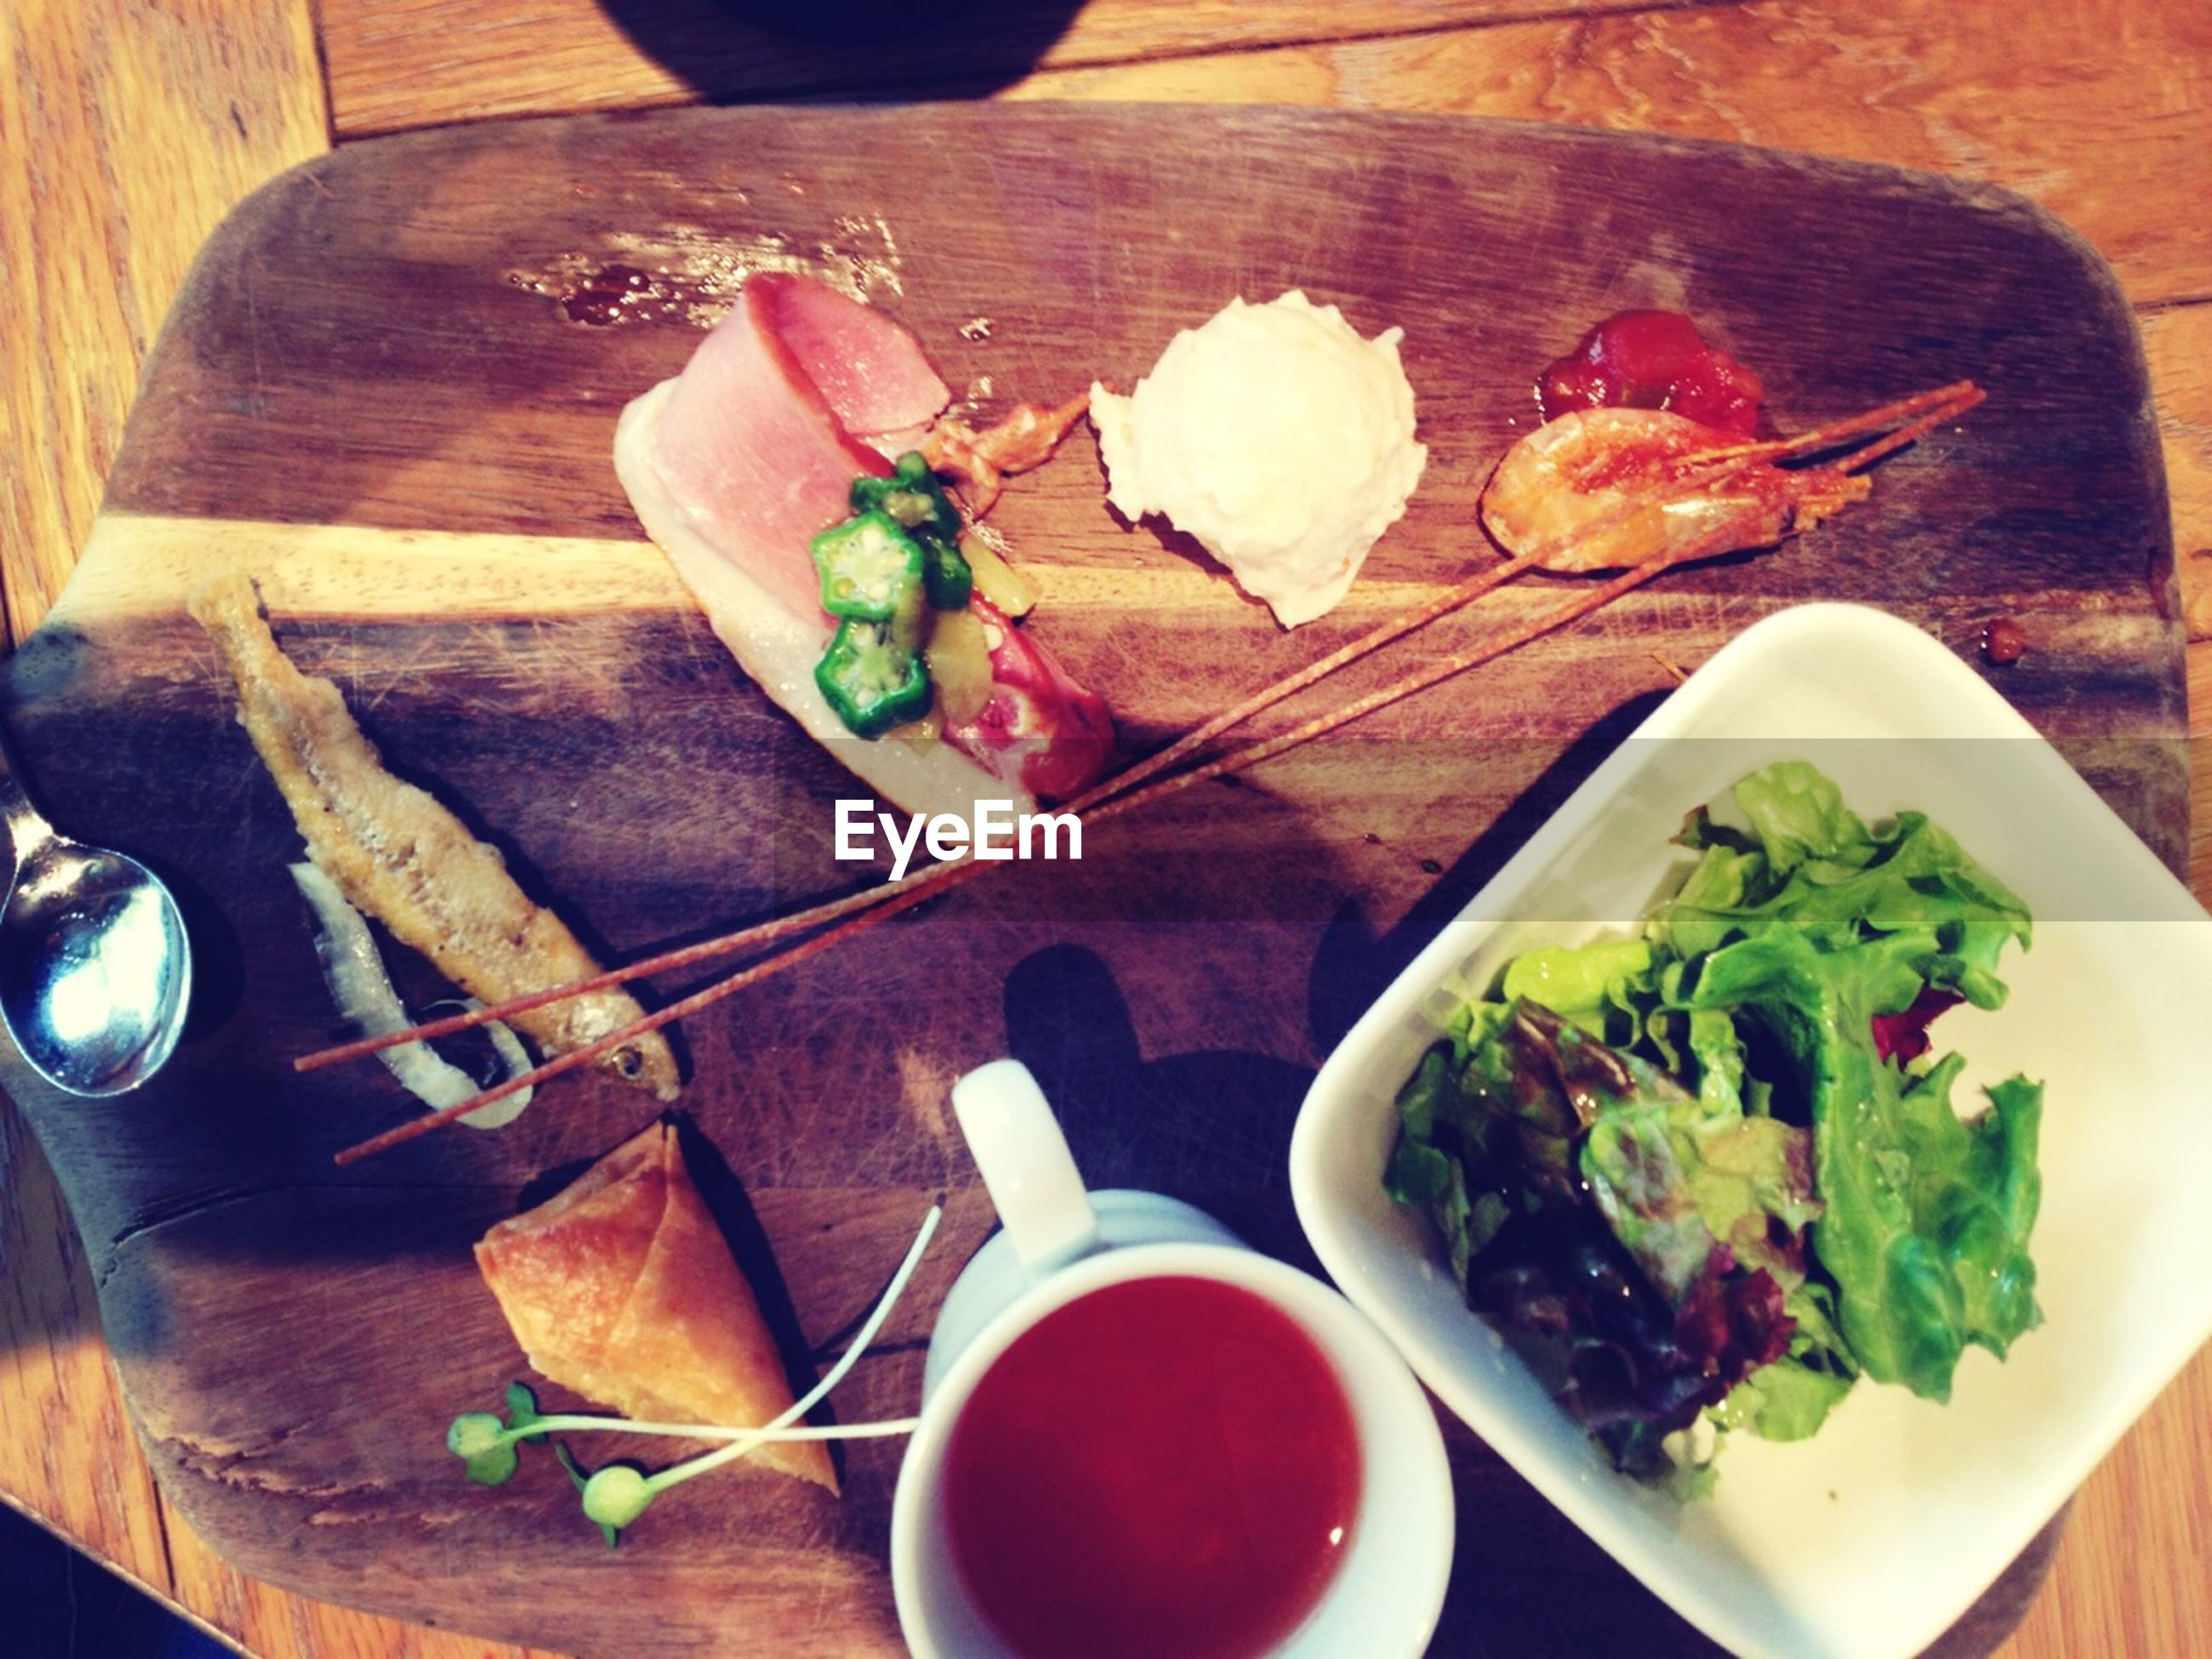 food and drink, indoors, freshness, food, table, plate, still life, high angle view, ready-to-eat, healthy eating, meal, serving size, bowl, vegetable, directly above, leaf, wood - material, salad, meat, served